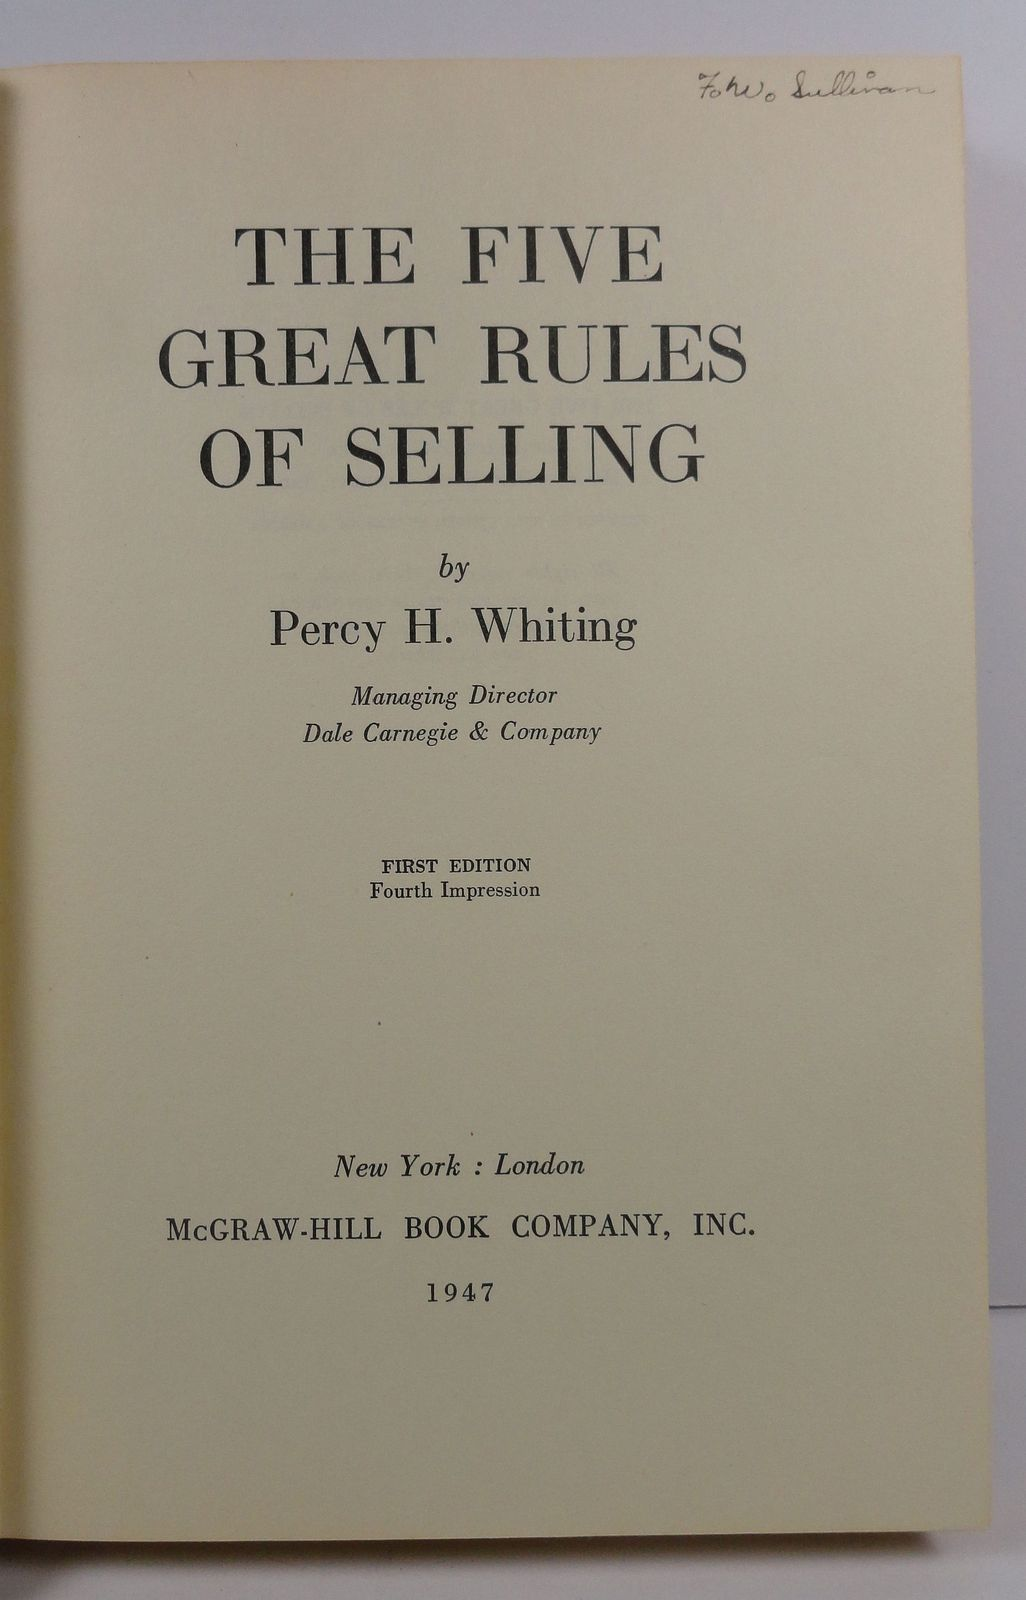 The Five Great Rules of Selling by Percy H. Whiting 1945